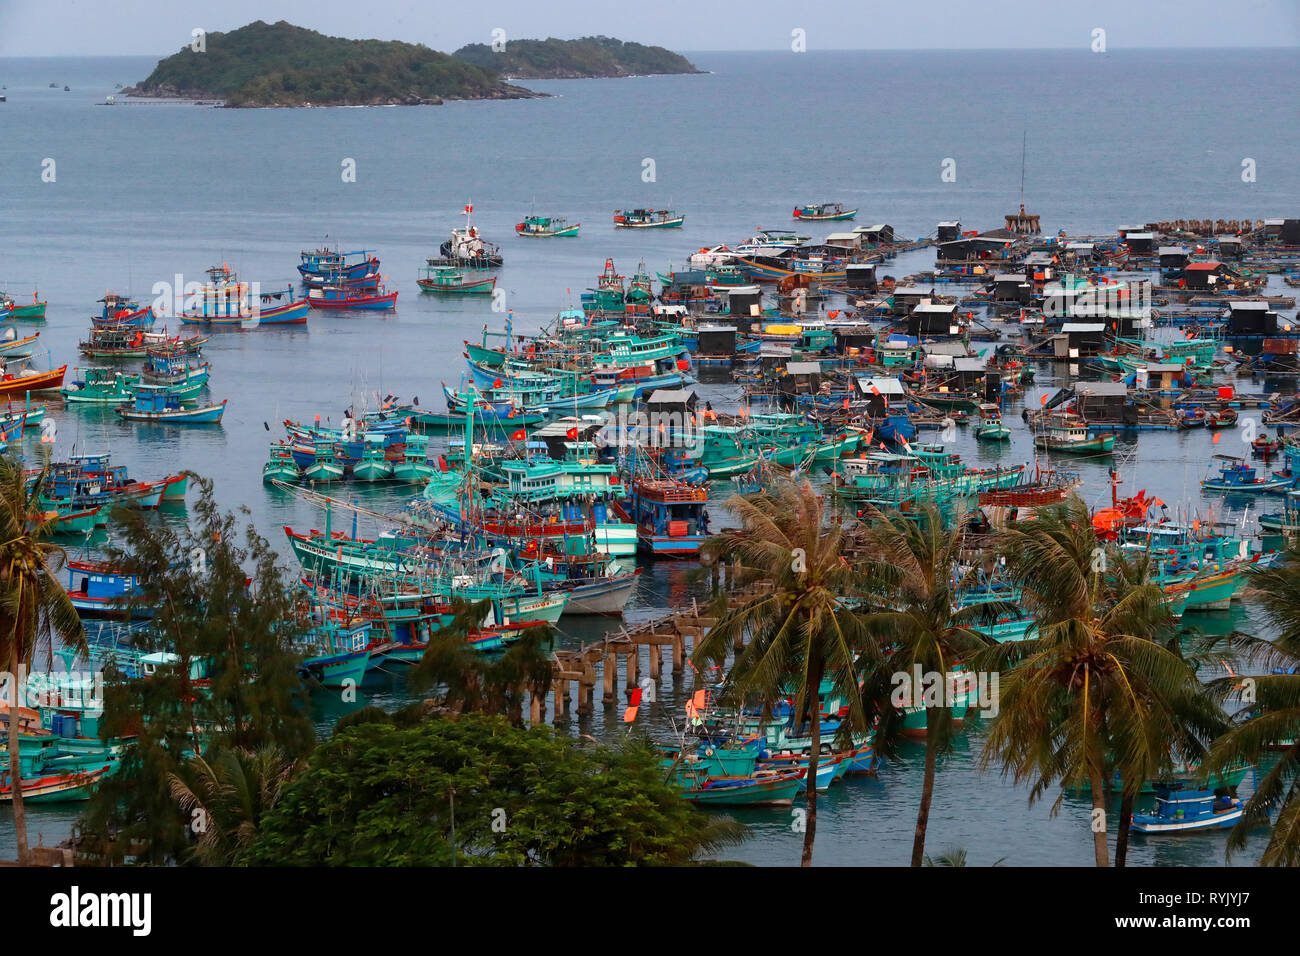 An Thoi harbour. Fisher boats. Vietnam. - Stock Image